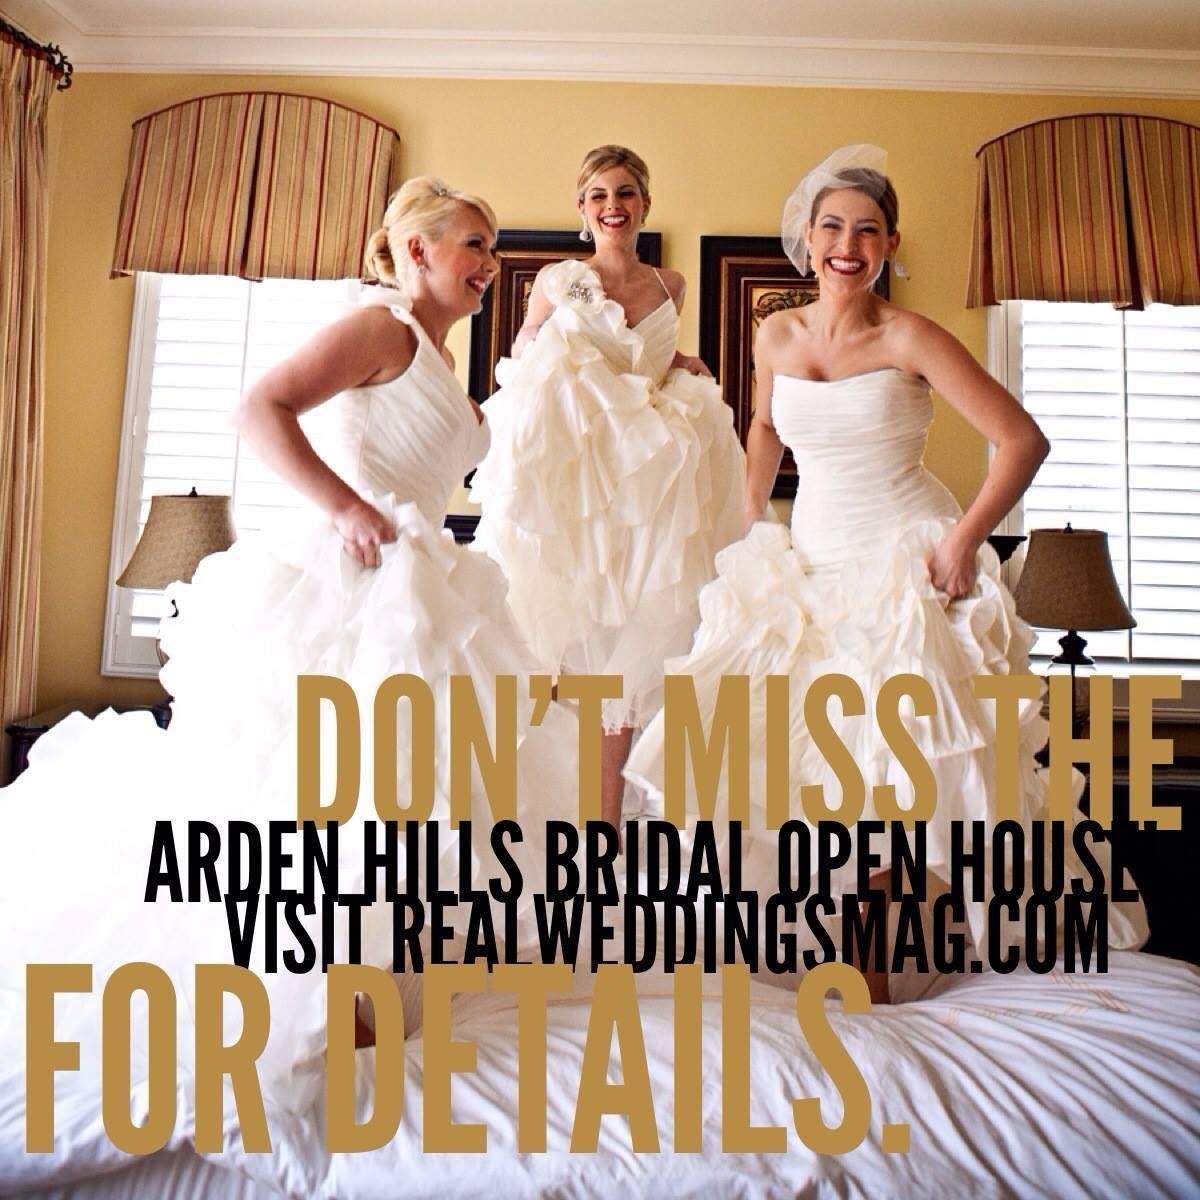 Sacramento Wedding Event: Join Us For The Arden Hills